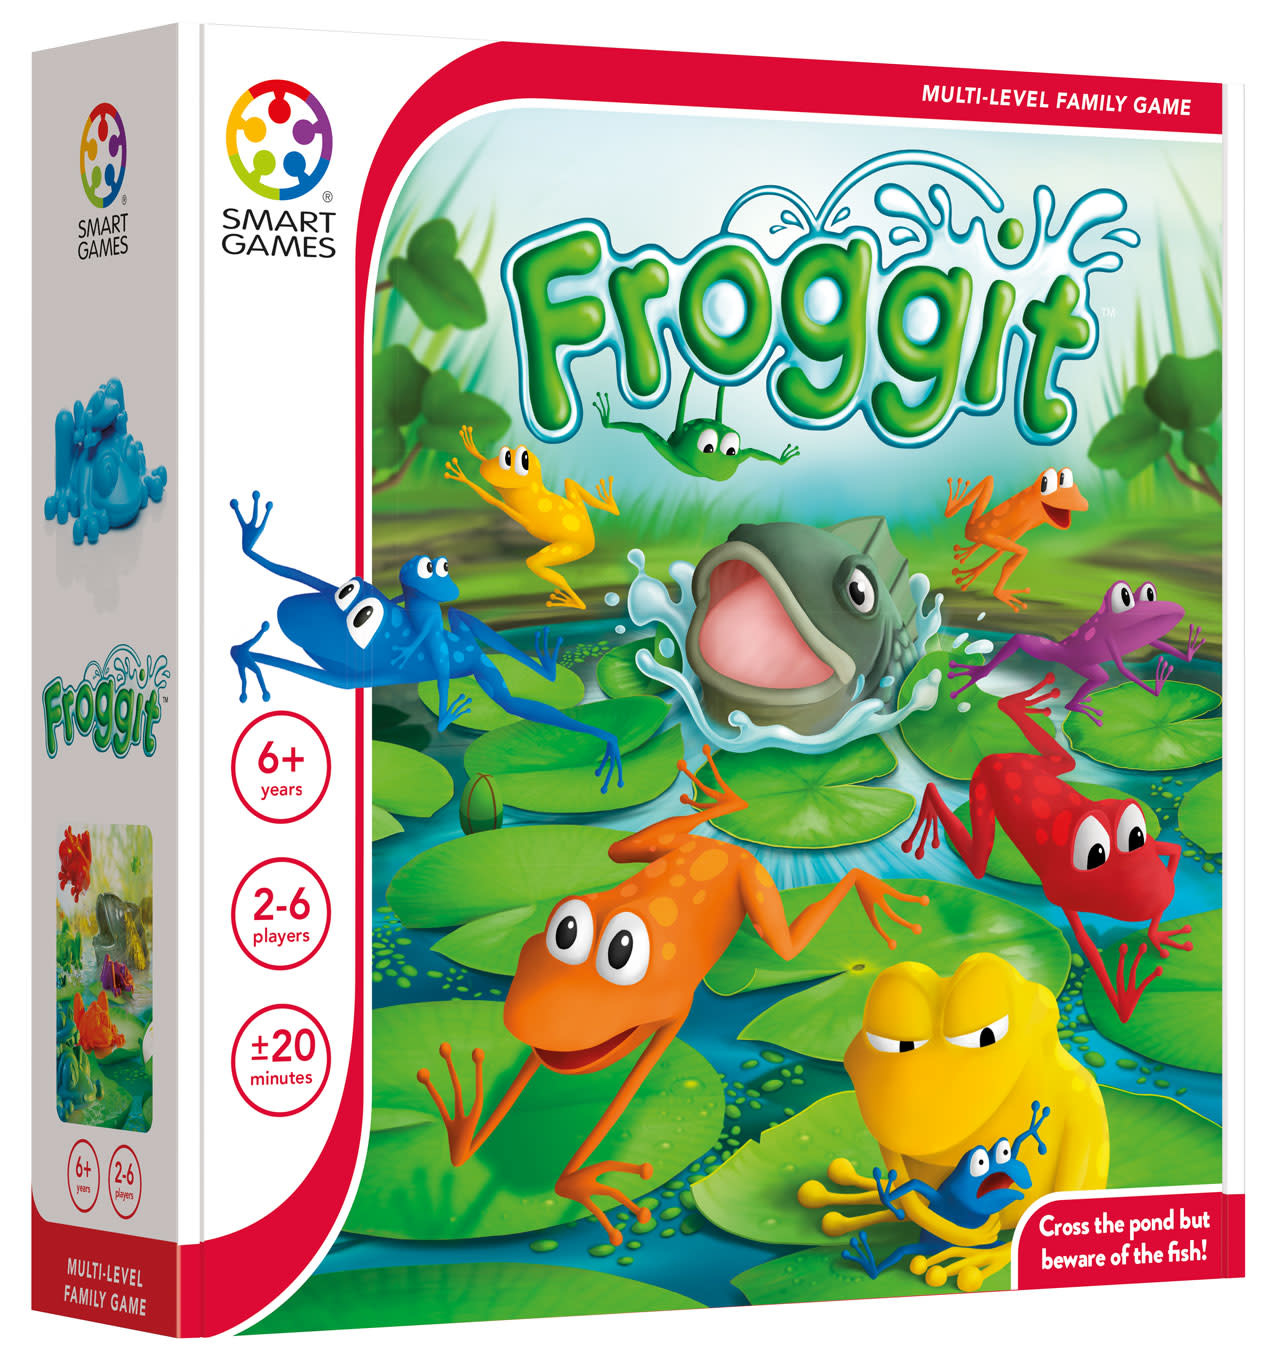 Froggit by Smart Games